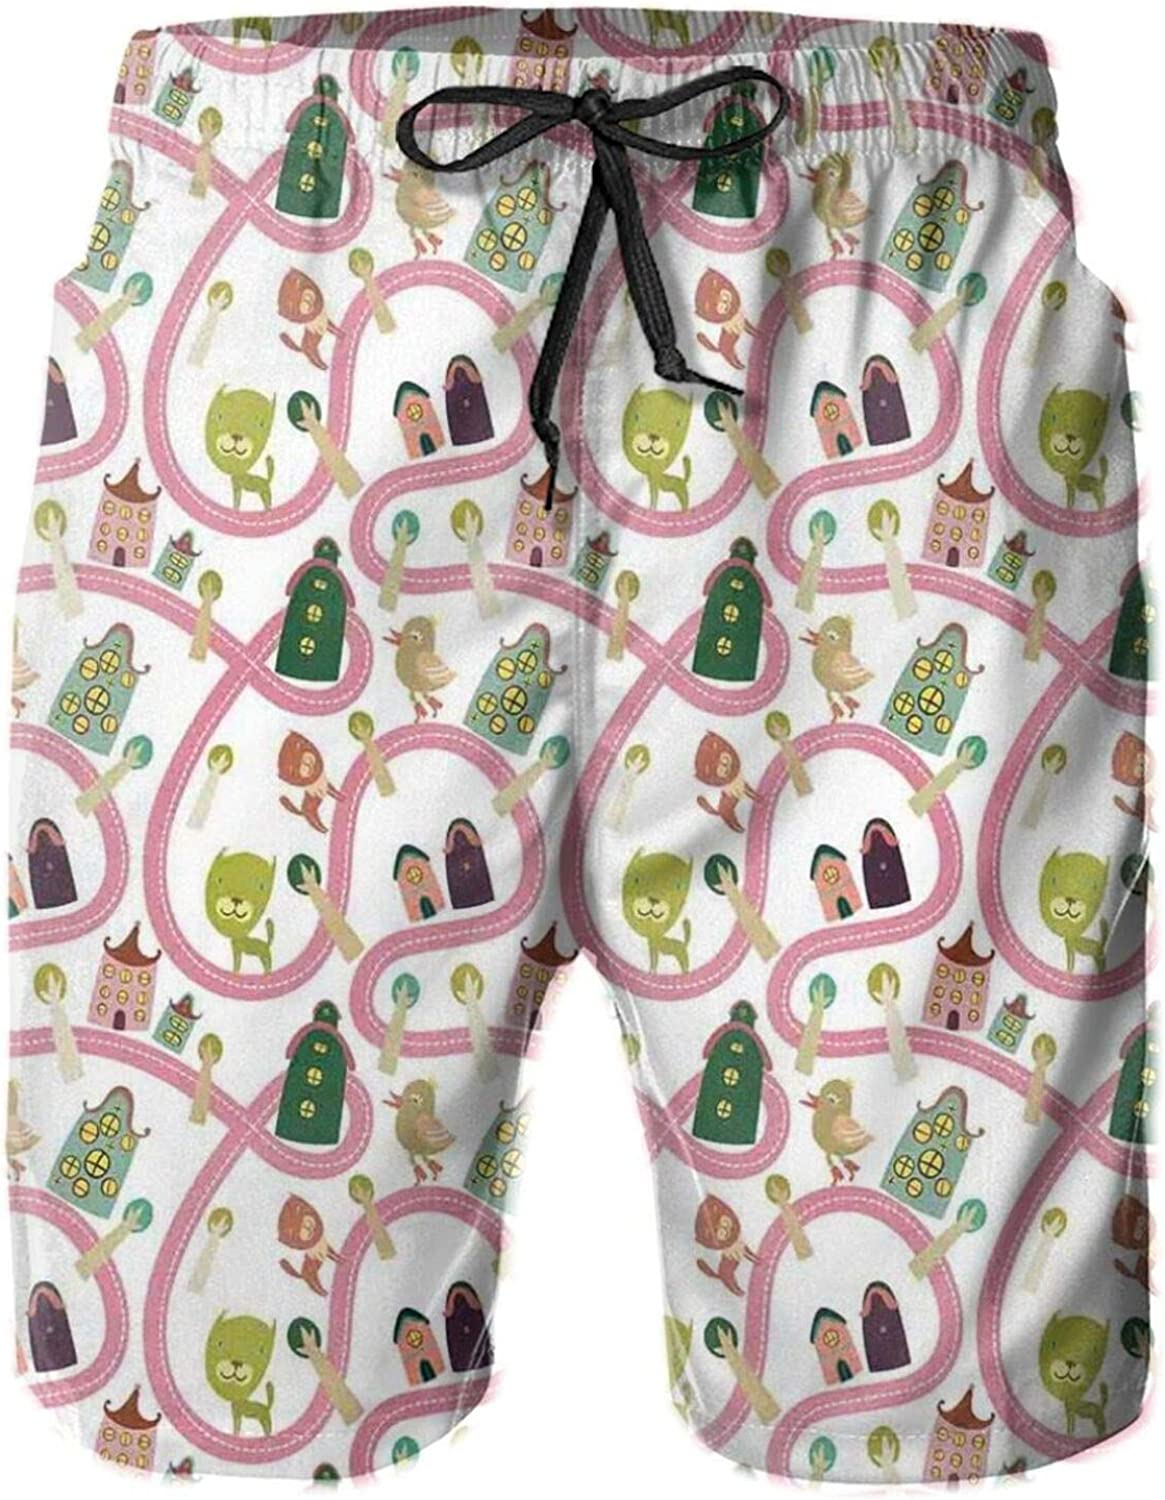 Cats and Birds On The Road with Cartoon Houses Fantasy Town Pattern Printed Beach Shorts for Men Swim Trucks Mesh Lining,XXL